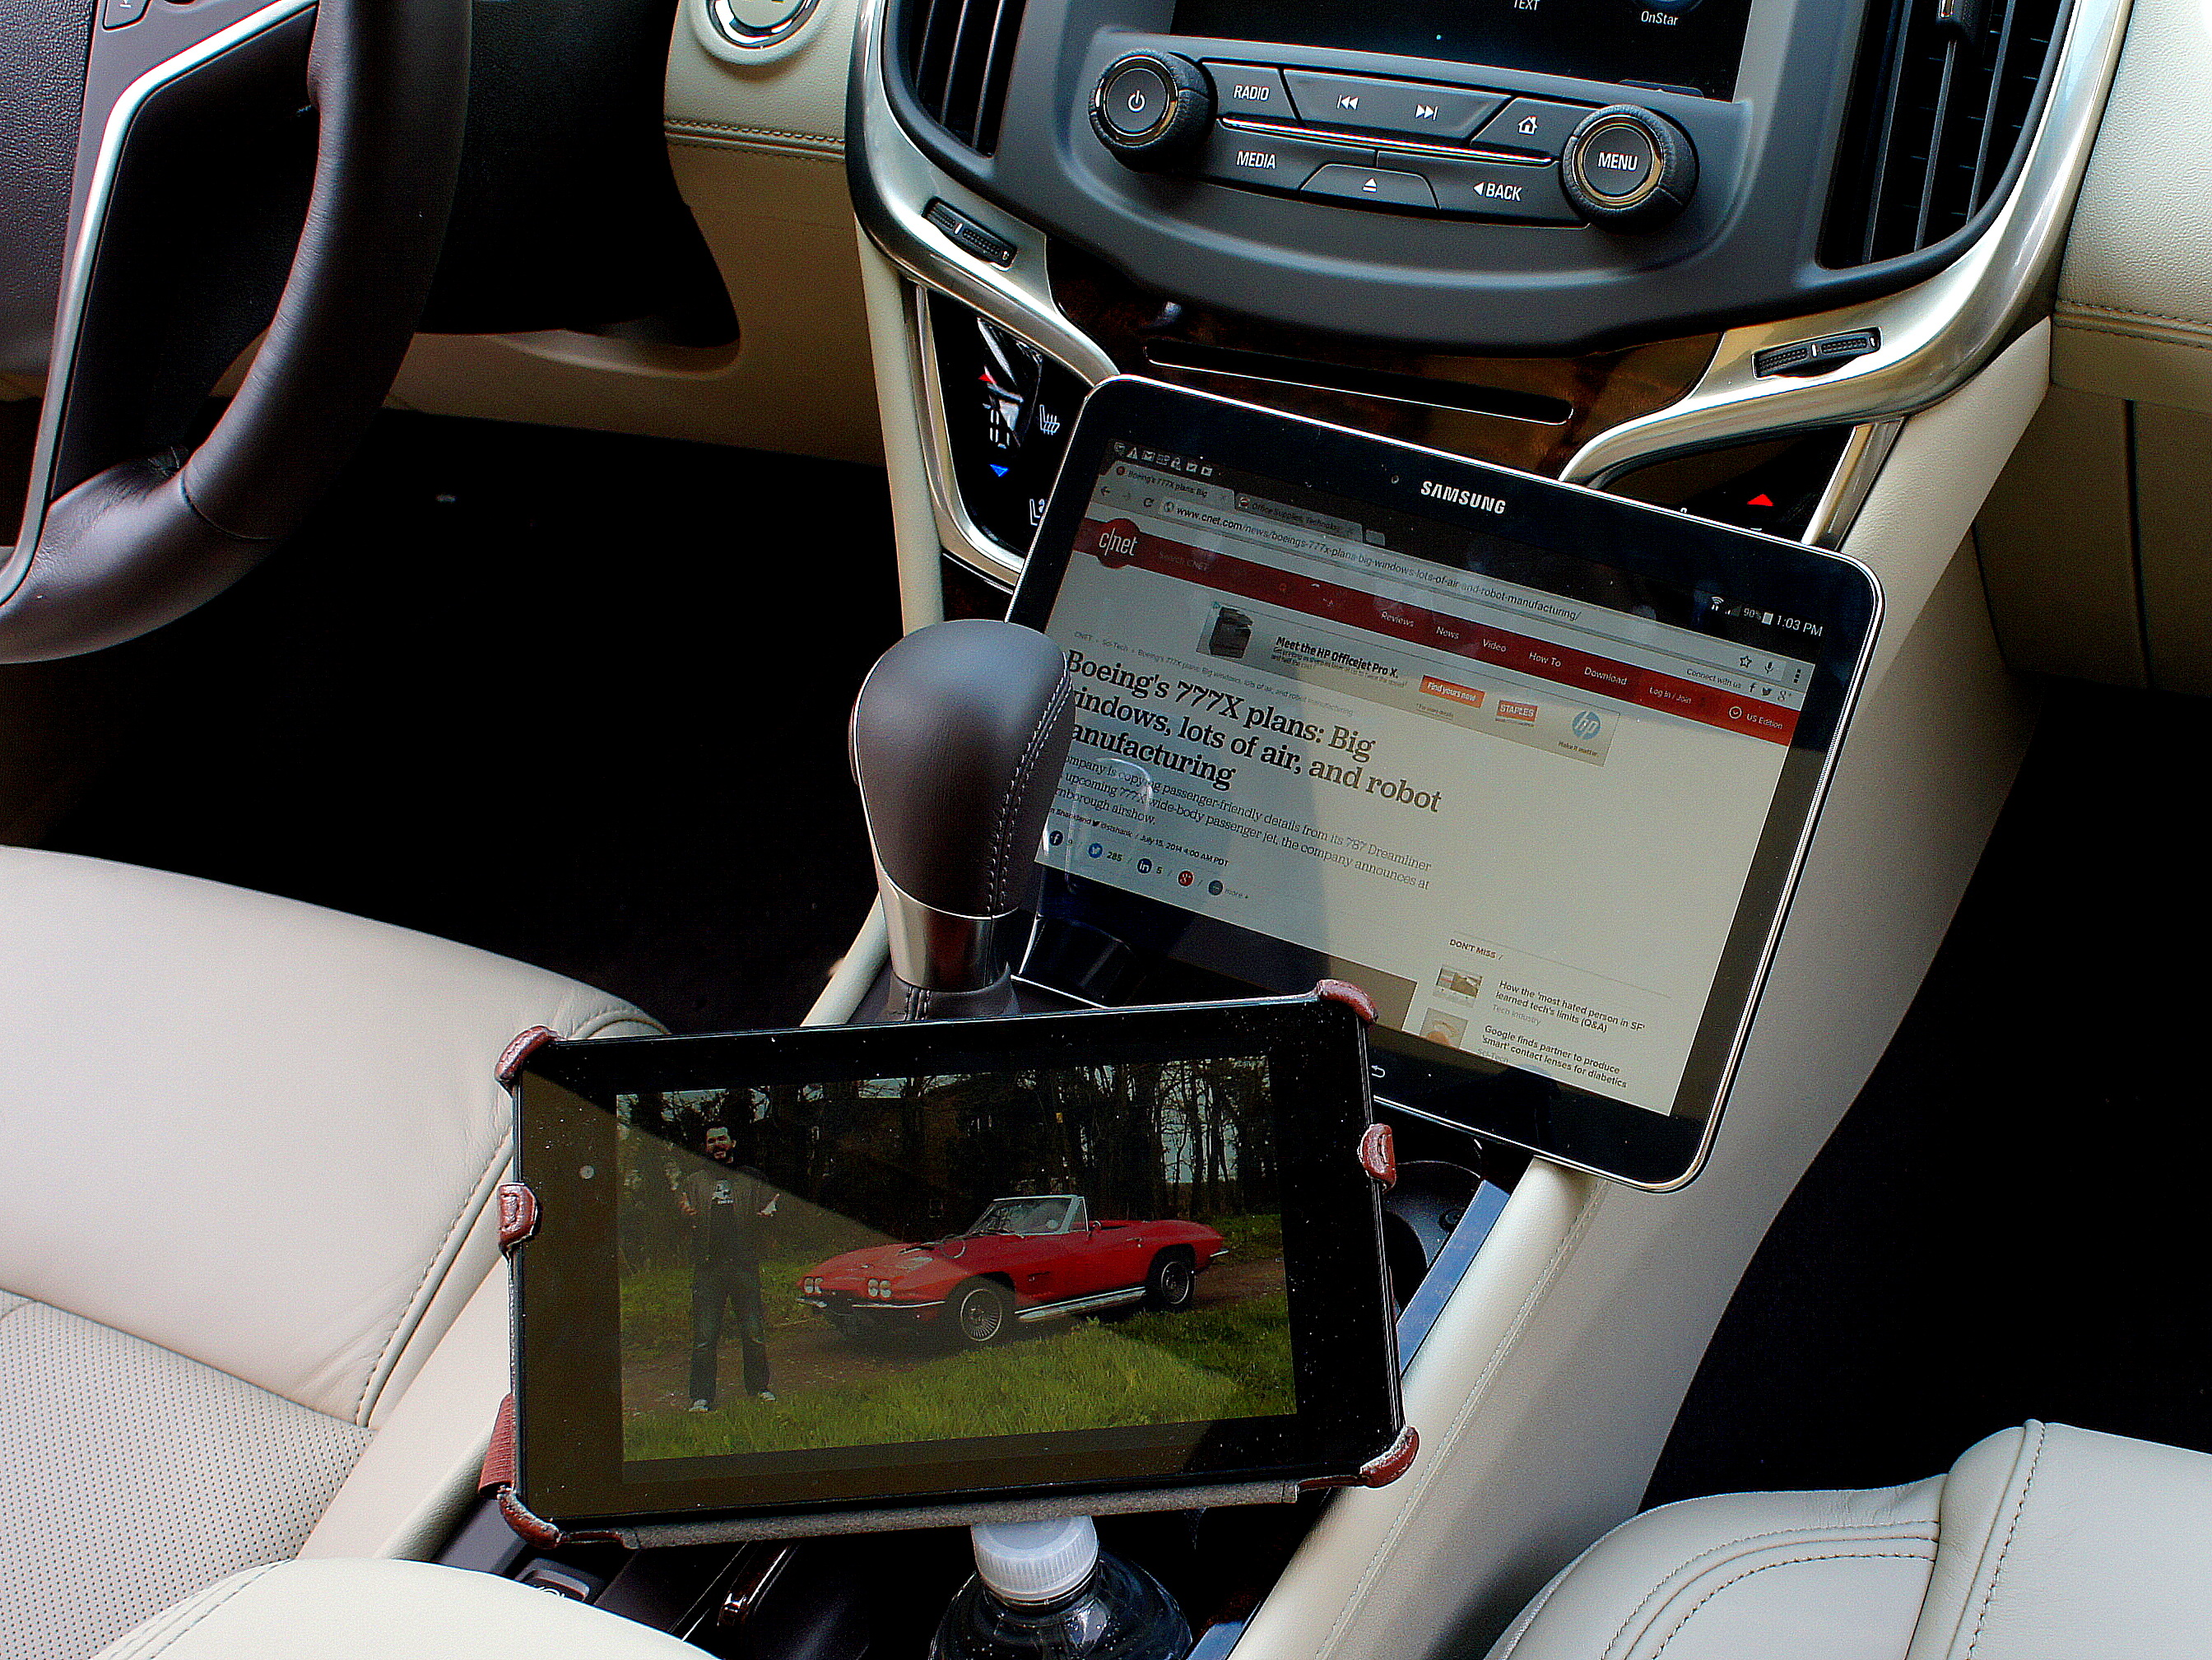 WiFi-connected tablets in a Buick